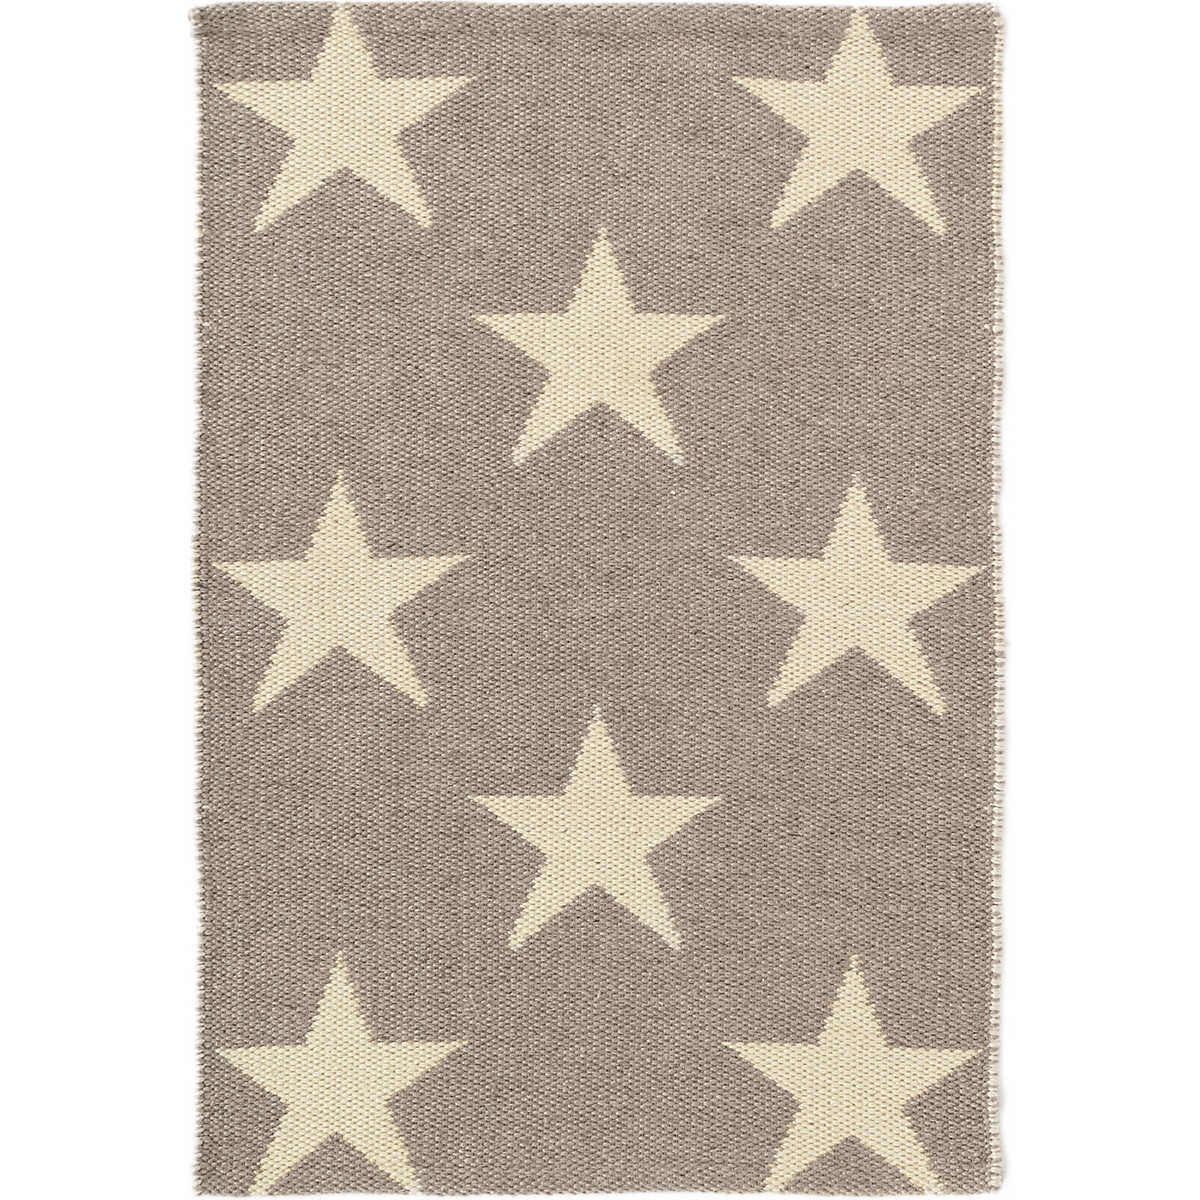 Star Grey/Ivory Indoor/Outdoor Rug | The Outlet